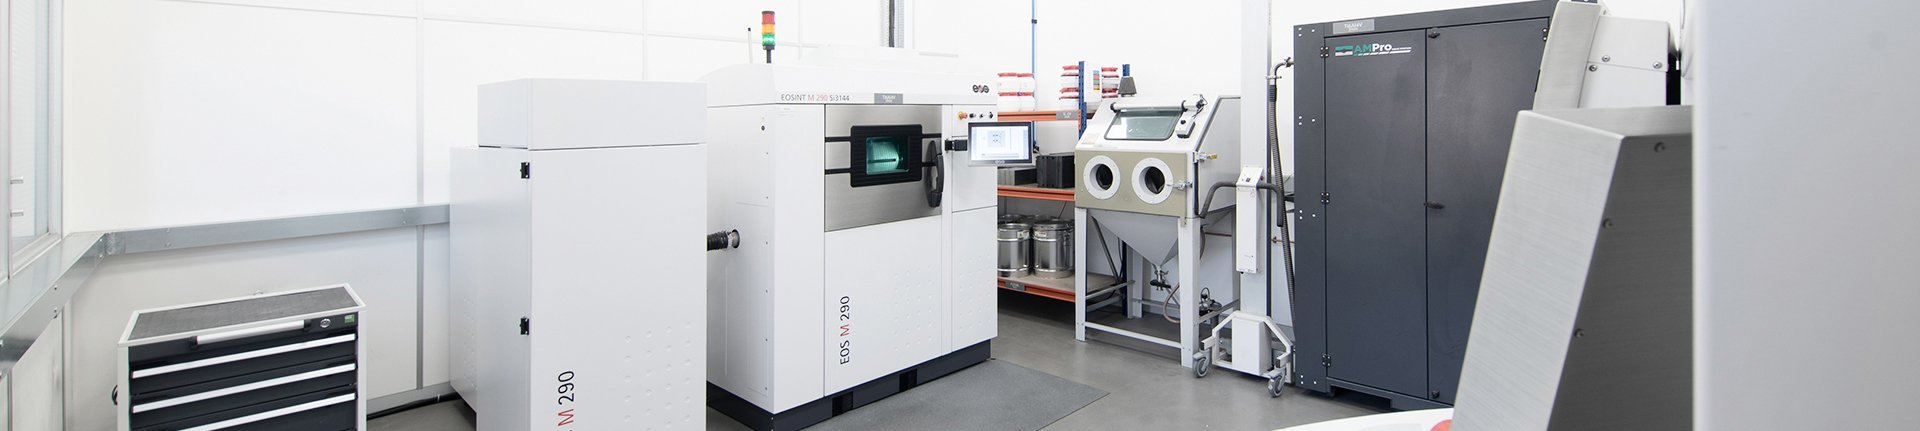 Additive Manufacturing Facility 1